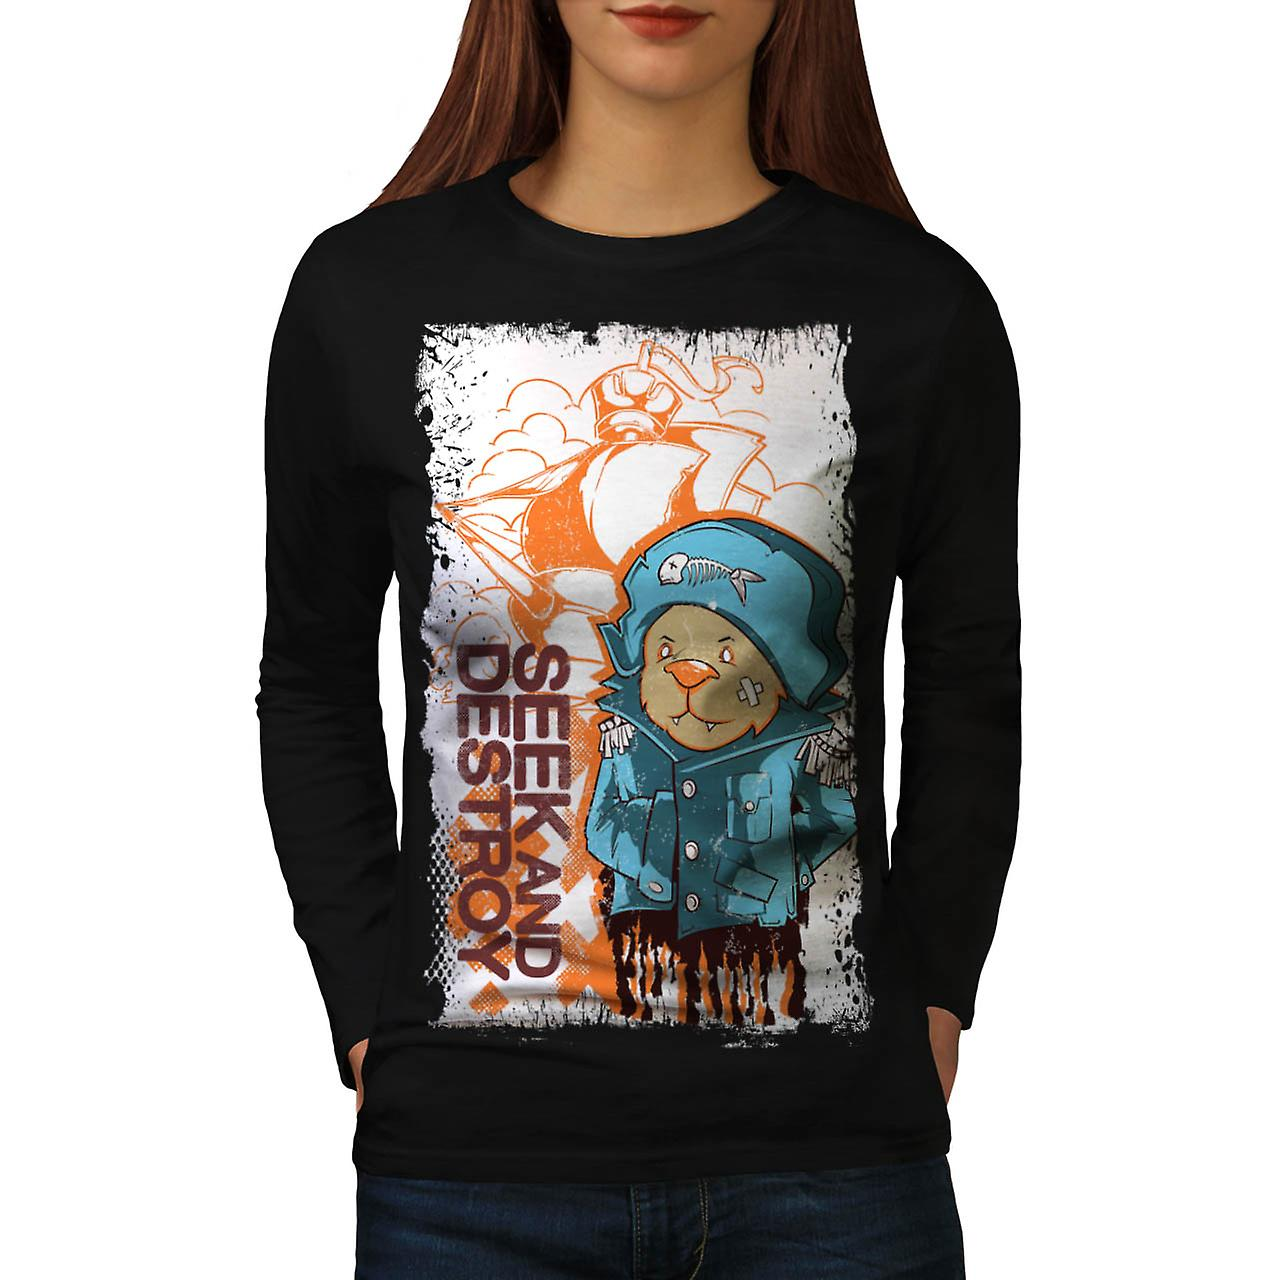 Seek And Destroy orso pirata cappotto donna nero manica lunga t-shirt | Wellcoda